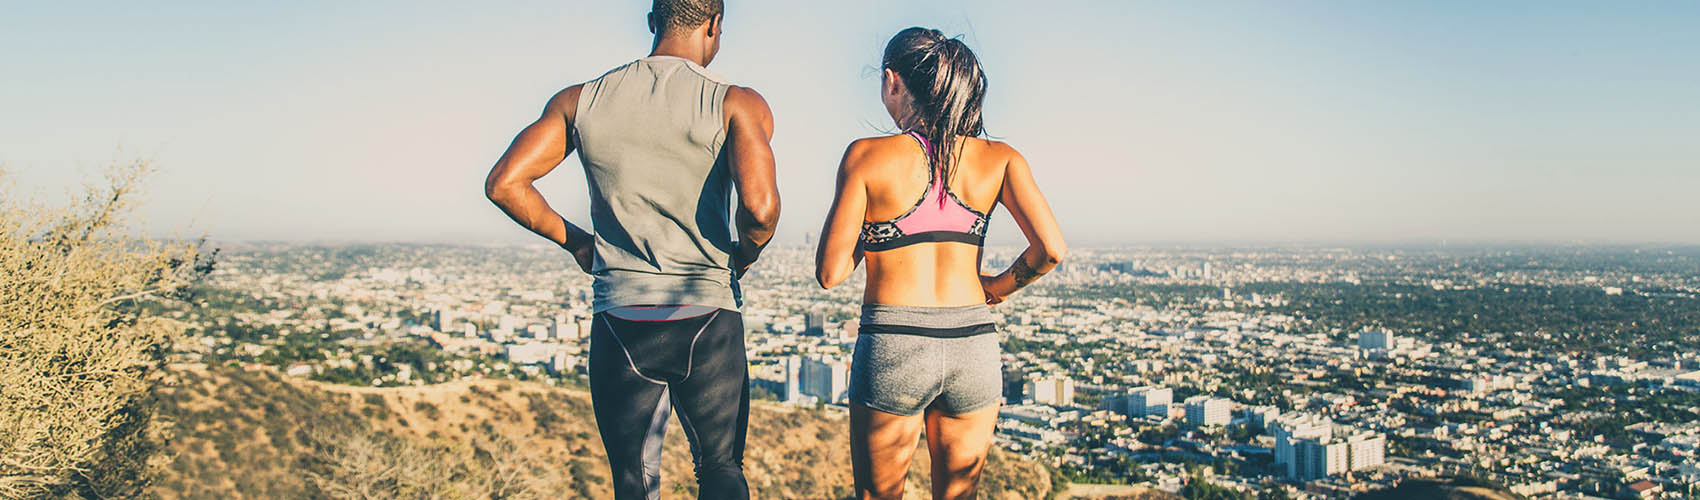 7 Tips to Get The Most out of Running Exercises